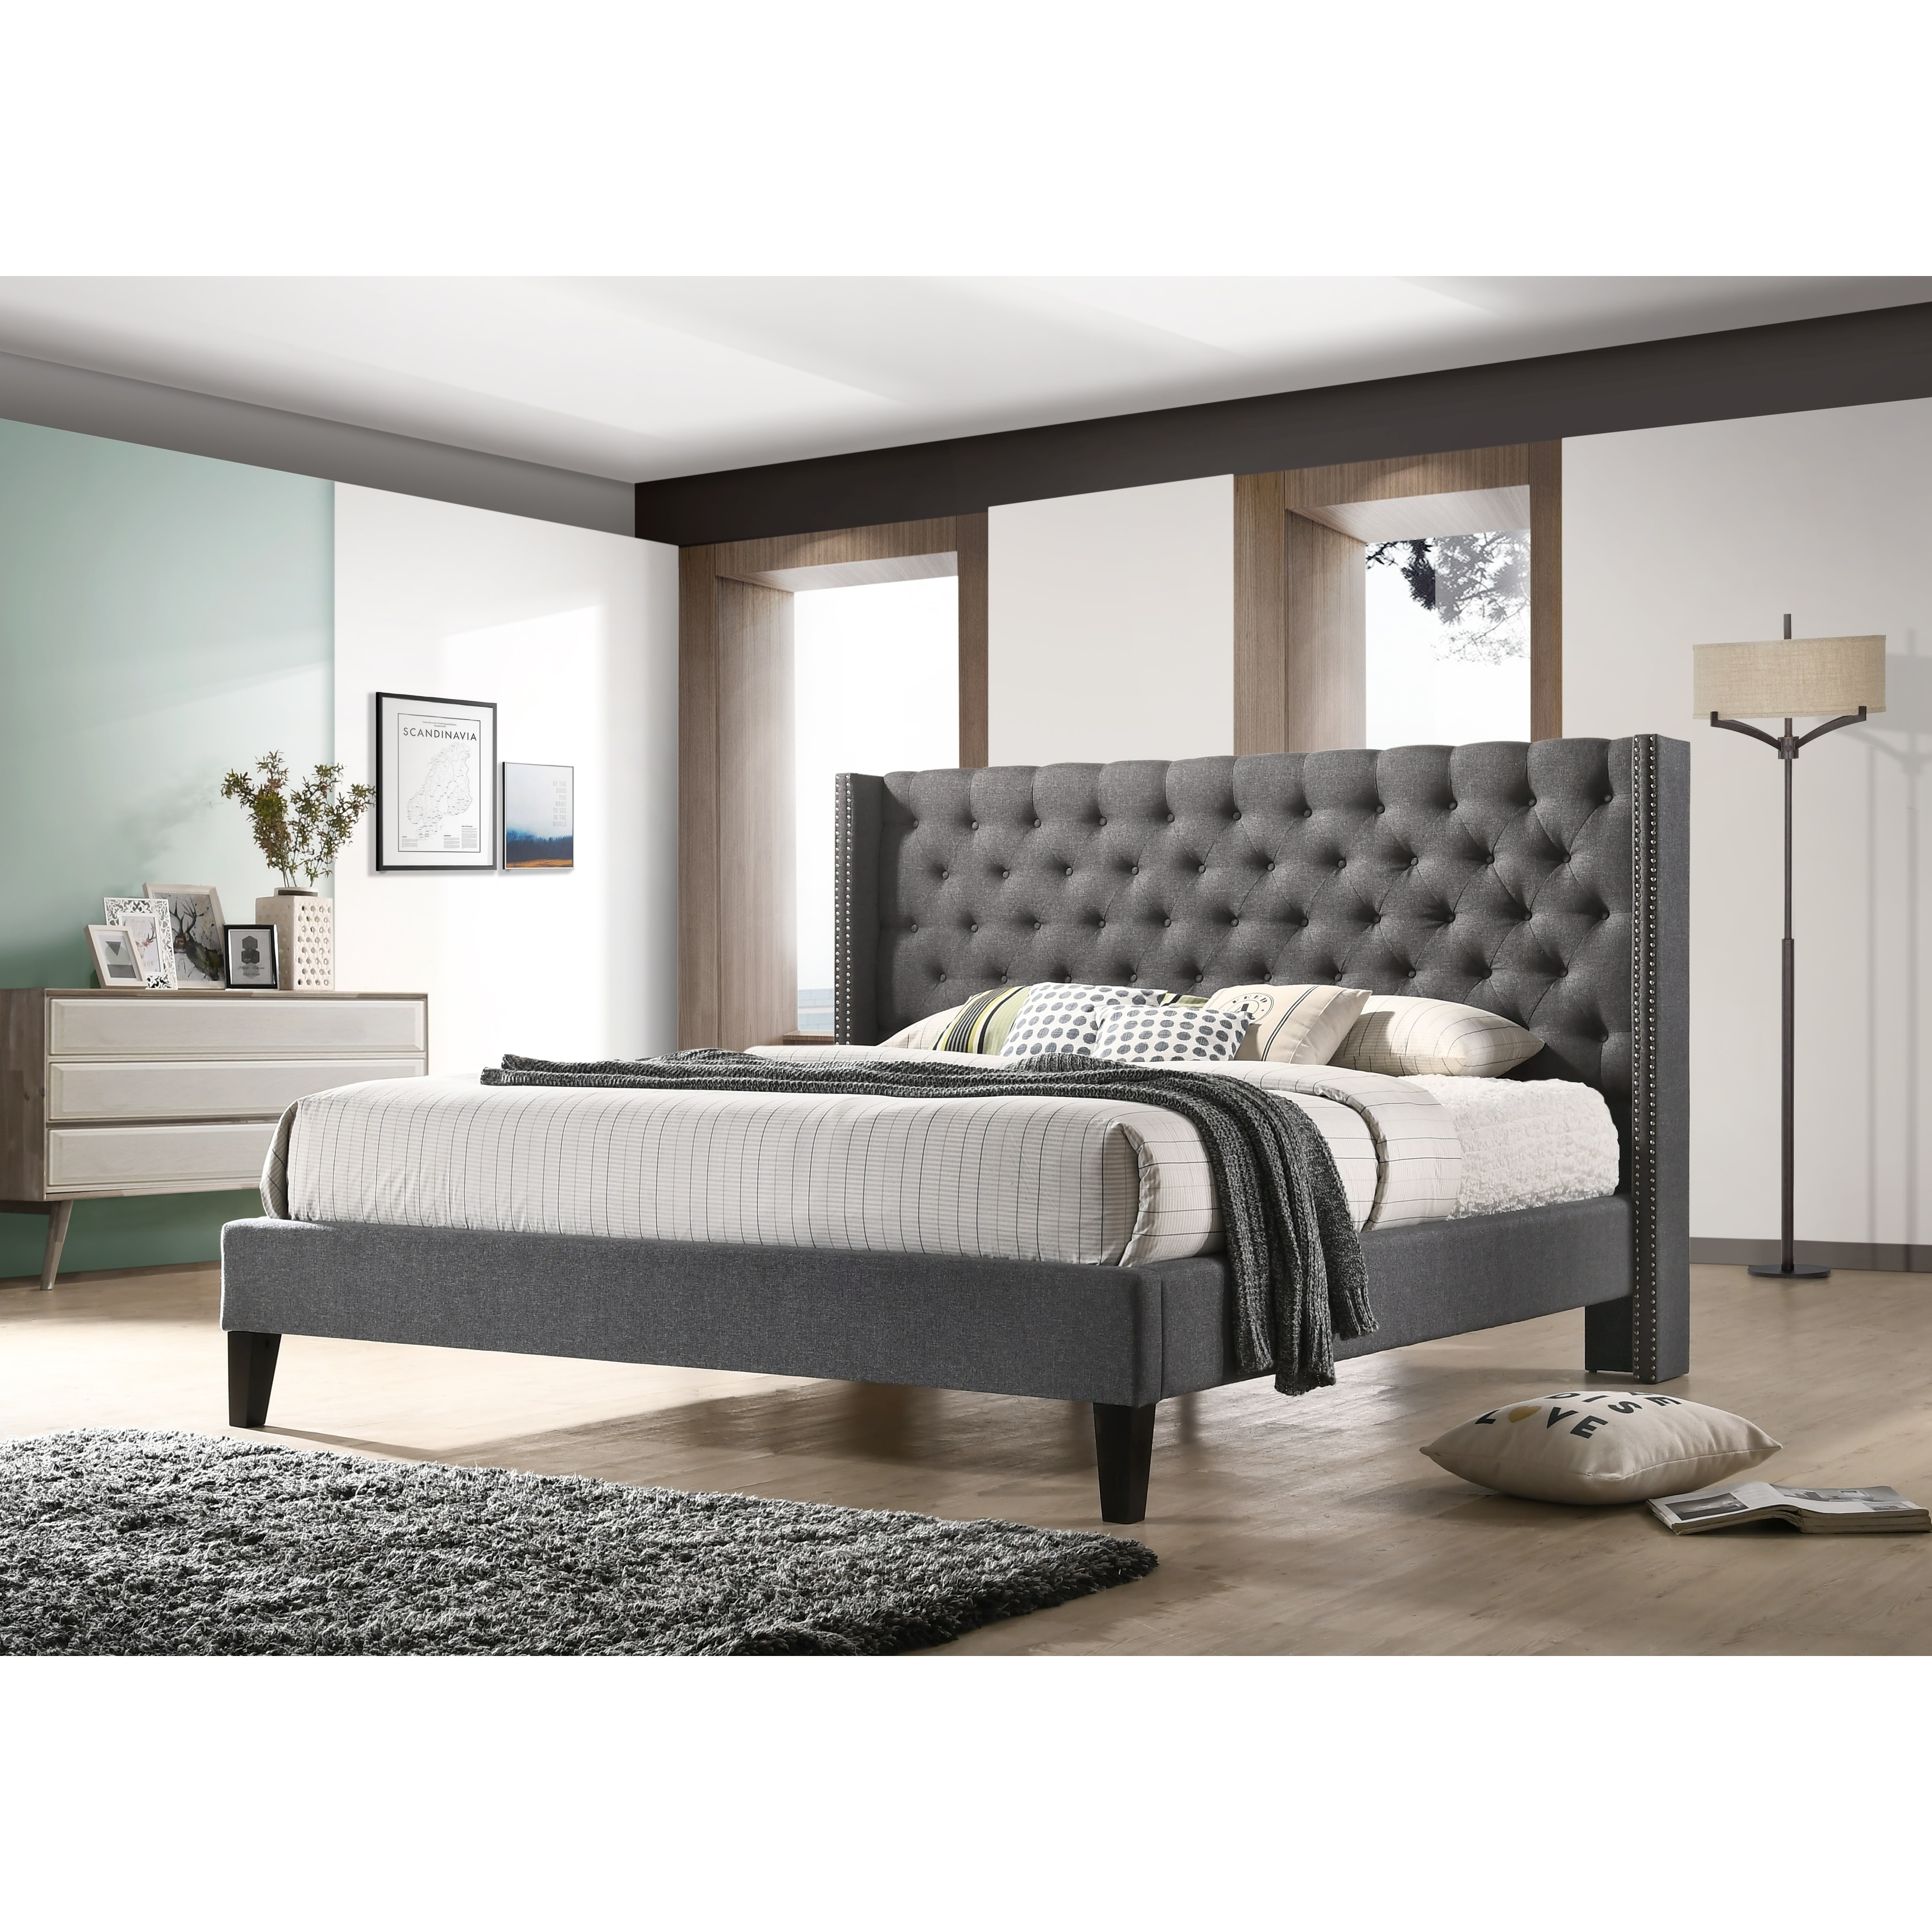 Altozzo Pacifica King Size Tufted Grey Fabric Upholstered Platform Contemporary Bed Free Shipping Today 10626793